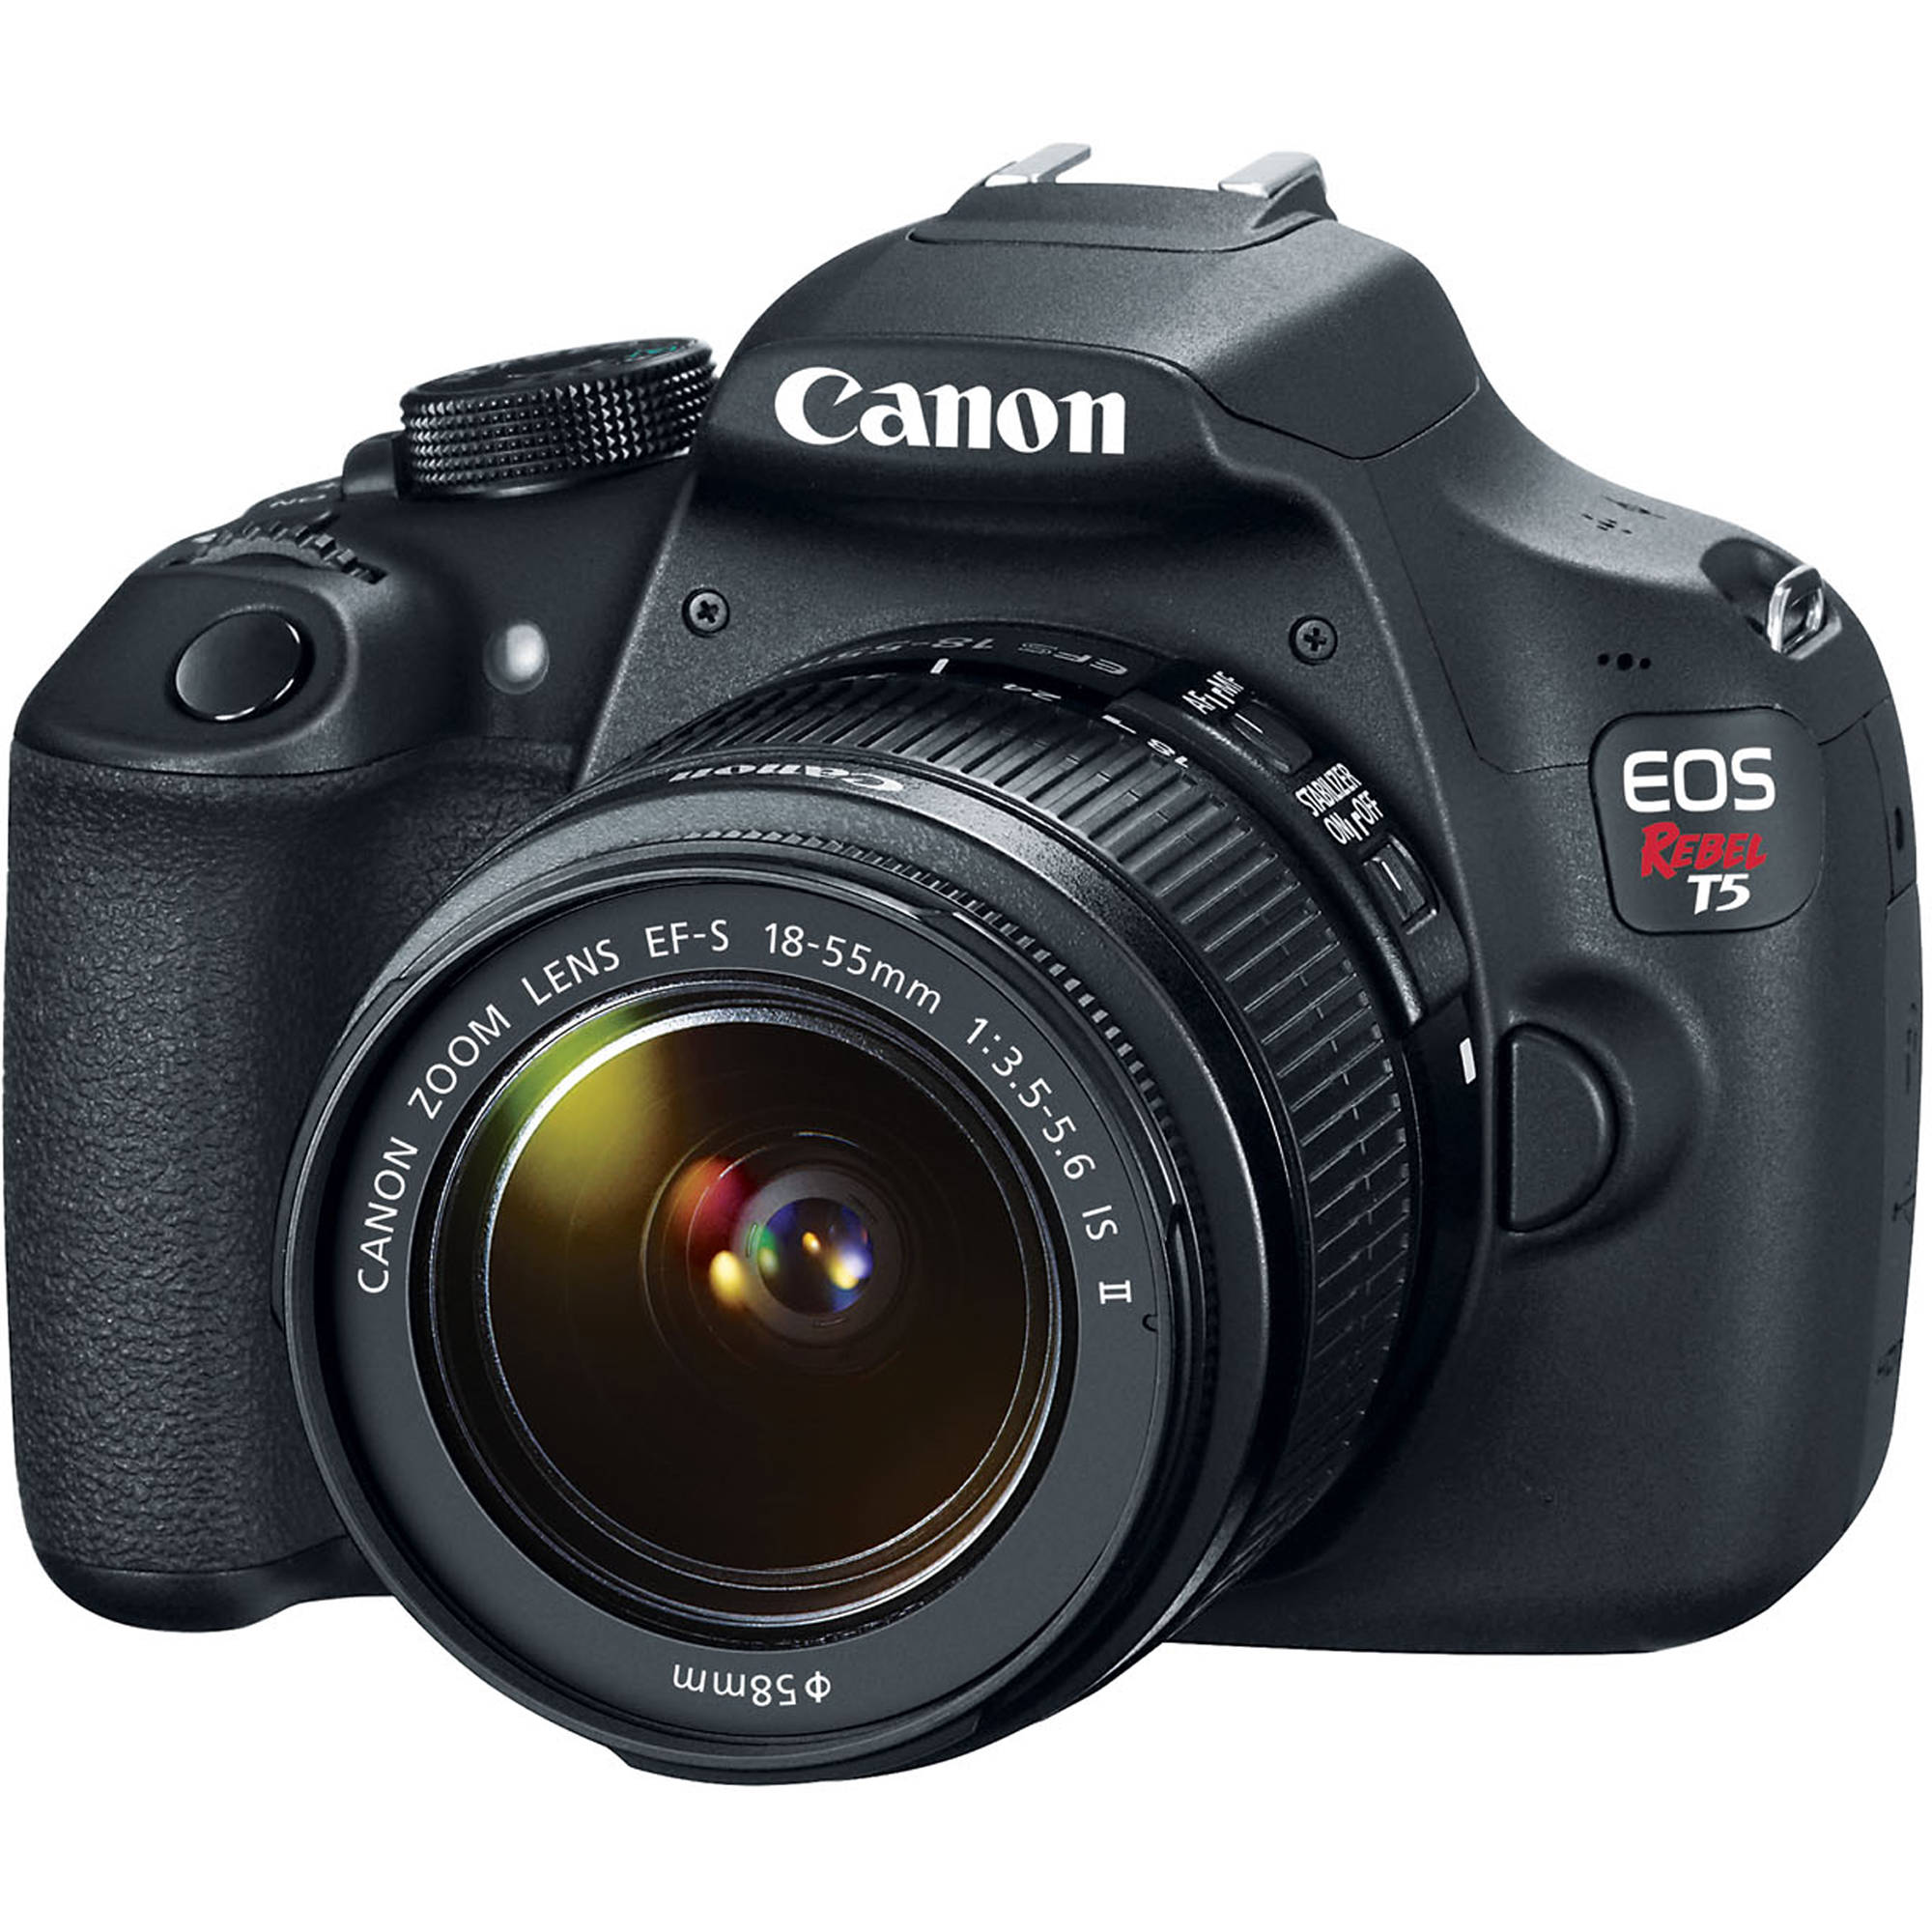 Canon Eos Rebel T5 Dslr Camera With 18 55mm Lens